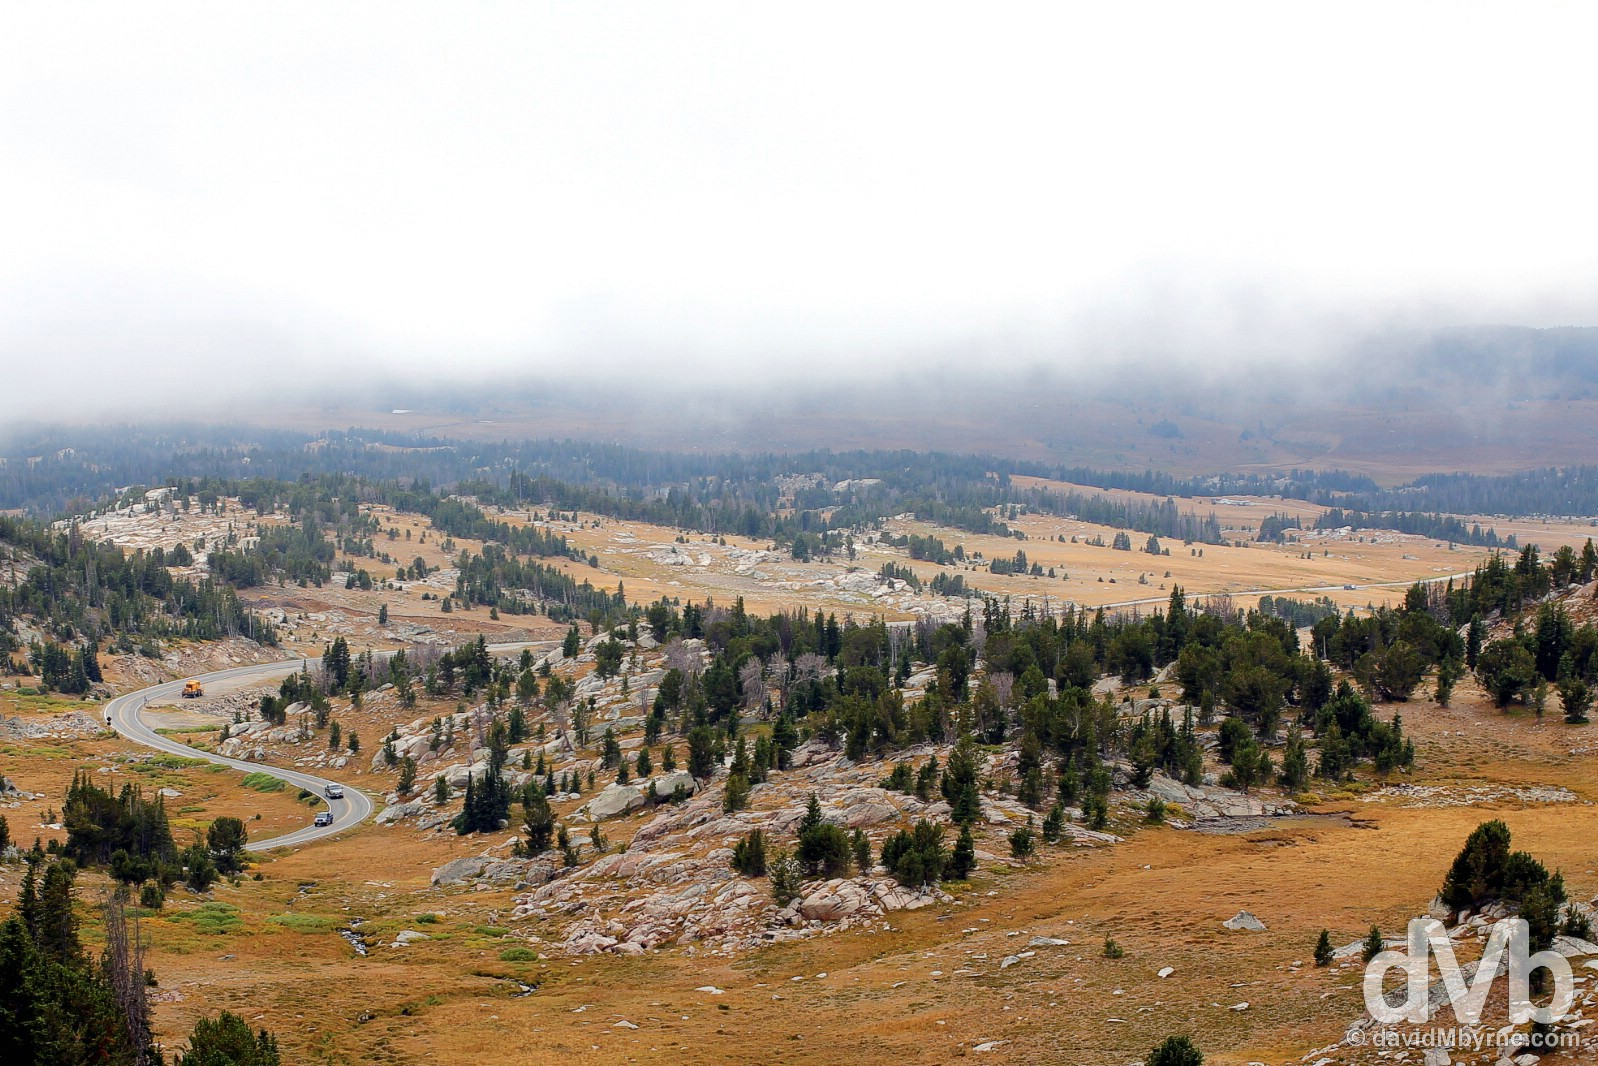 A section of U.S. Route 212, the All-American Beartooth Highway, en route to Yellowstone National Park, Wyoming, USA. September 4, 2016.